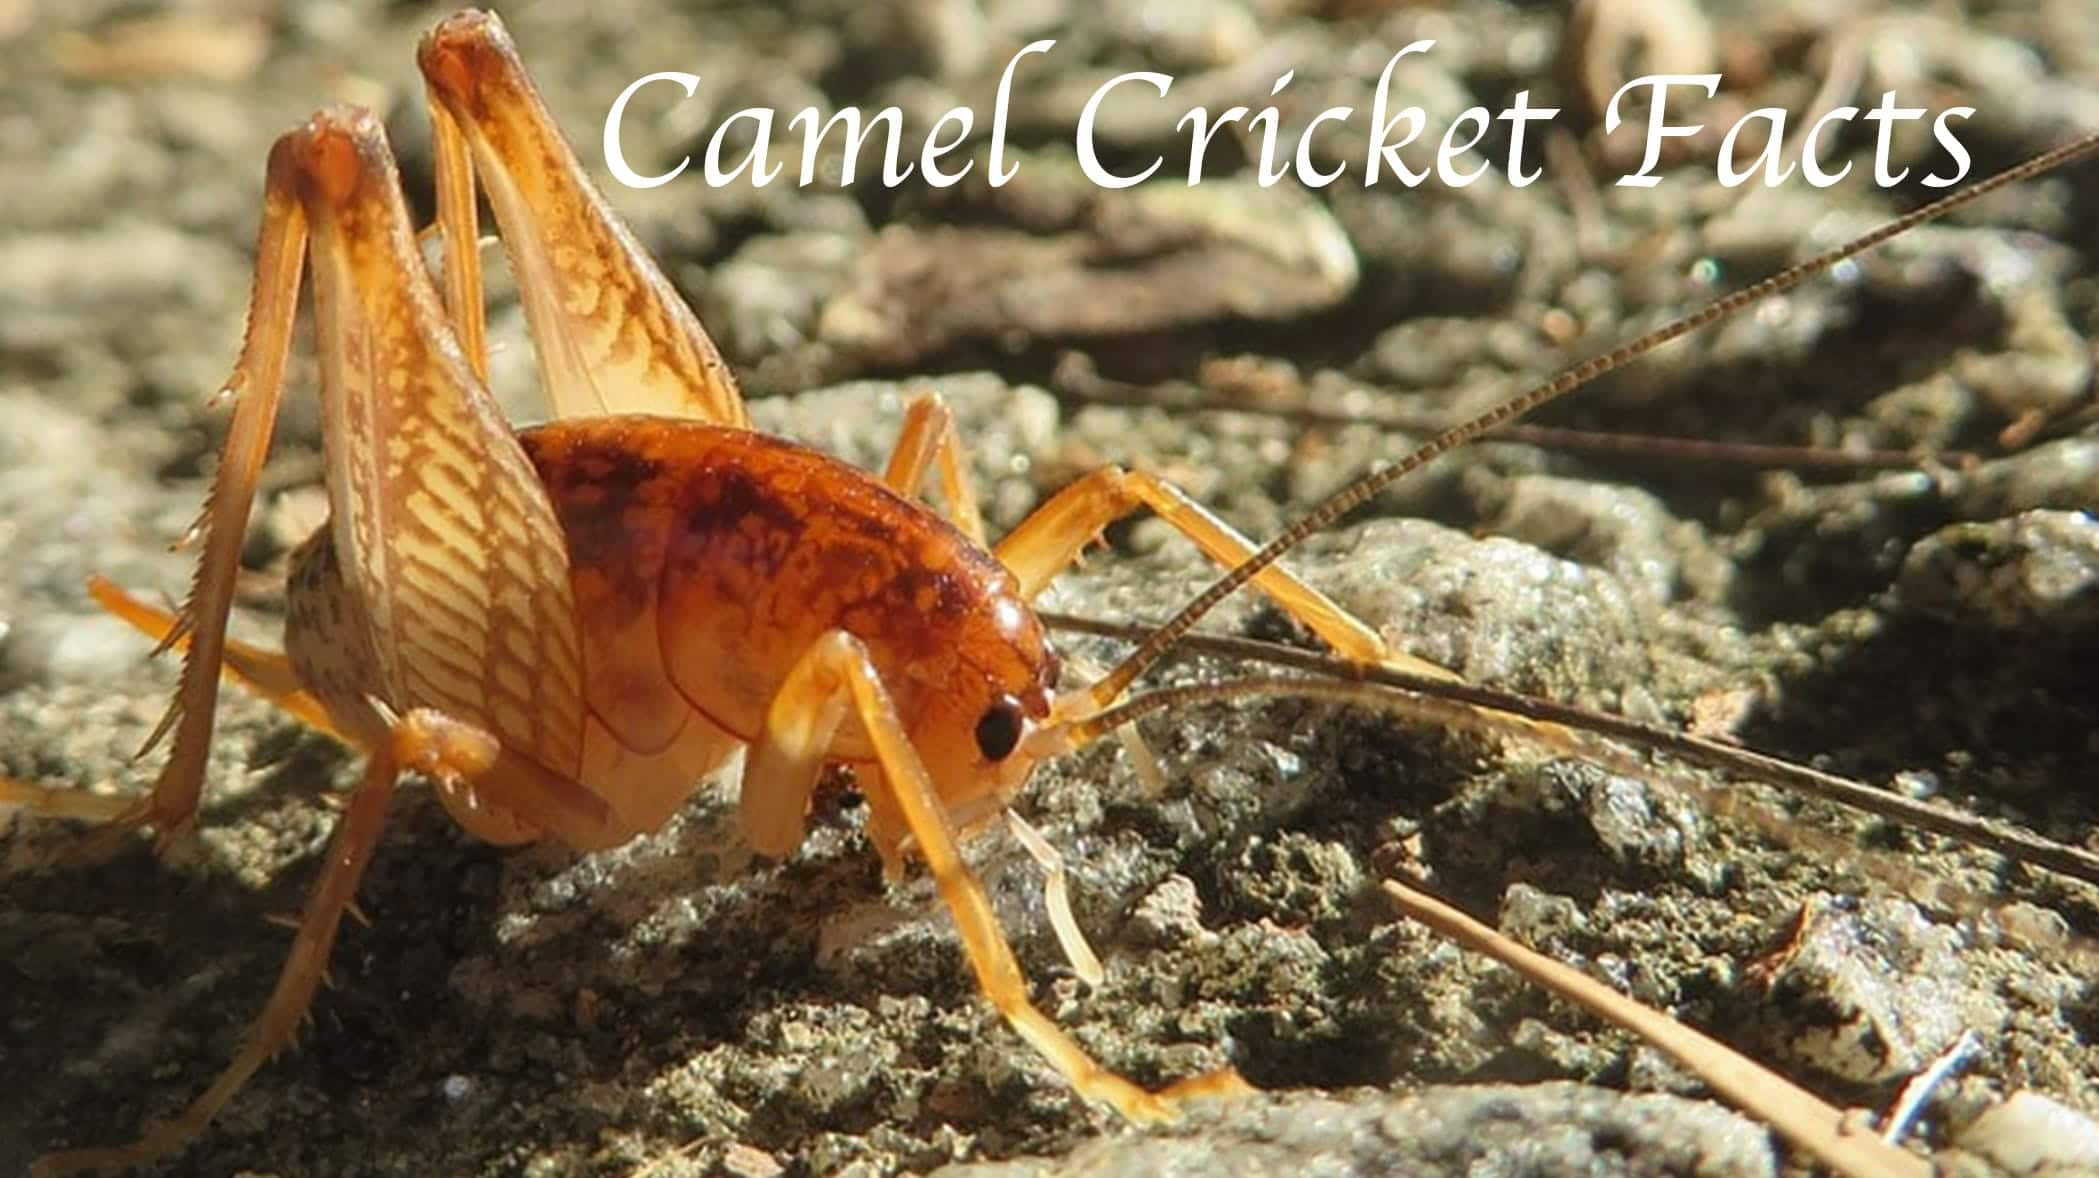 Camel Cricket Facts and FAQs